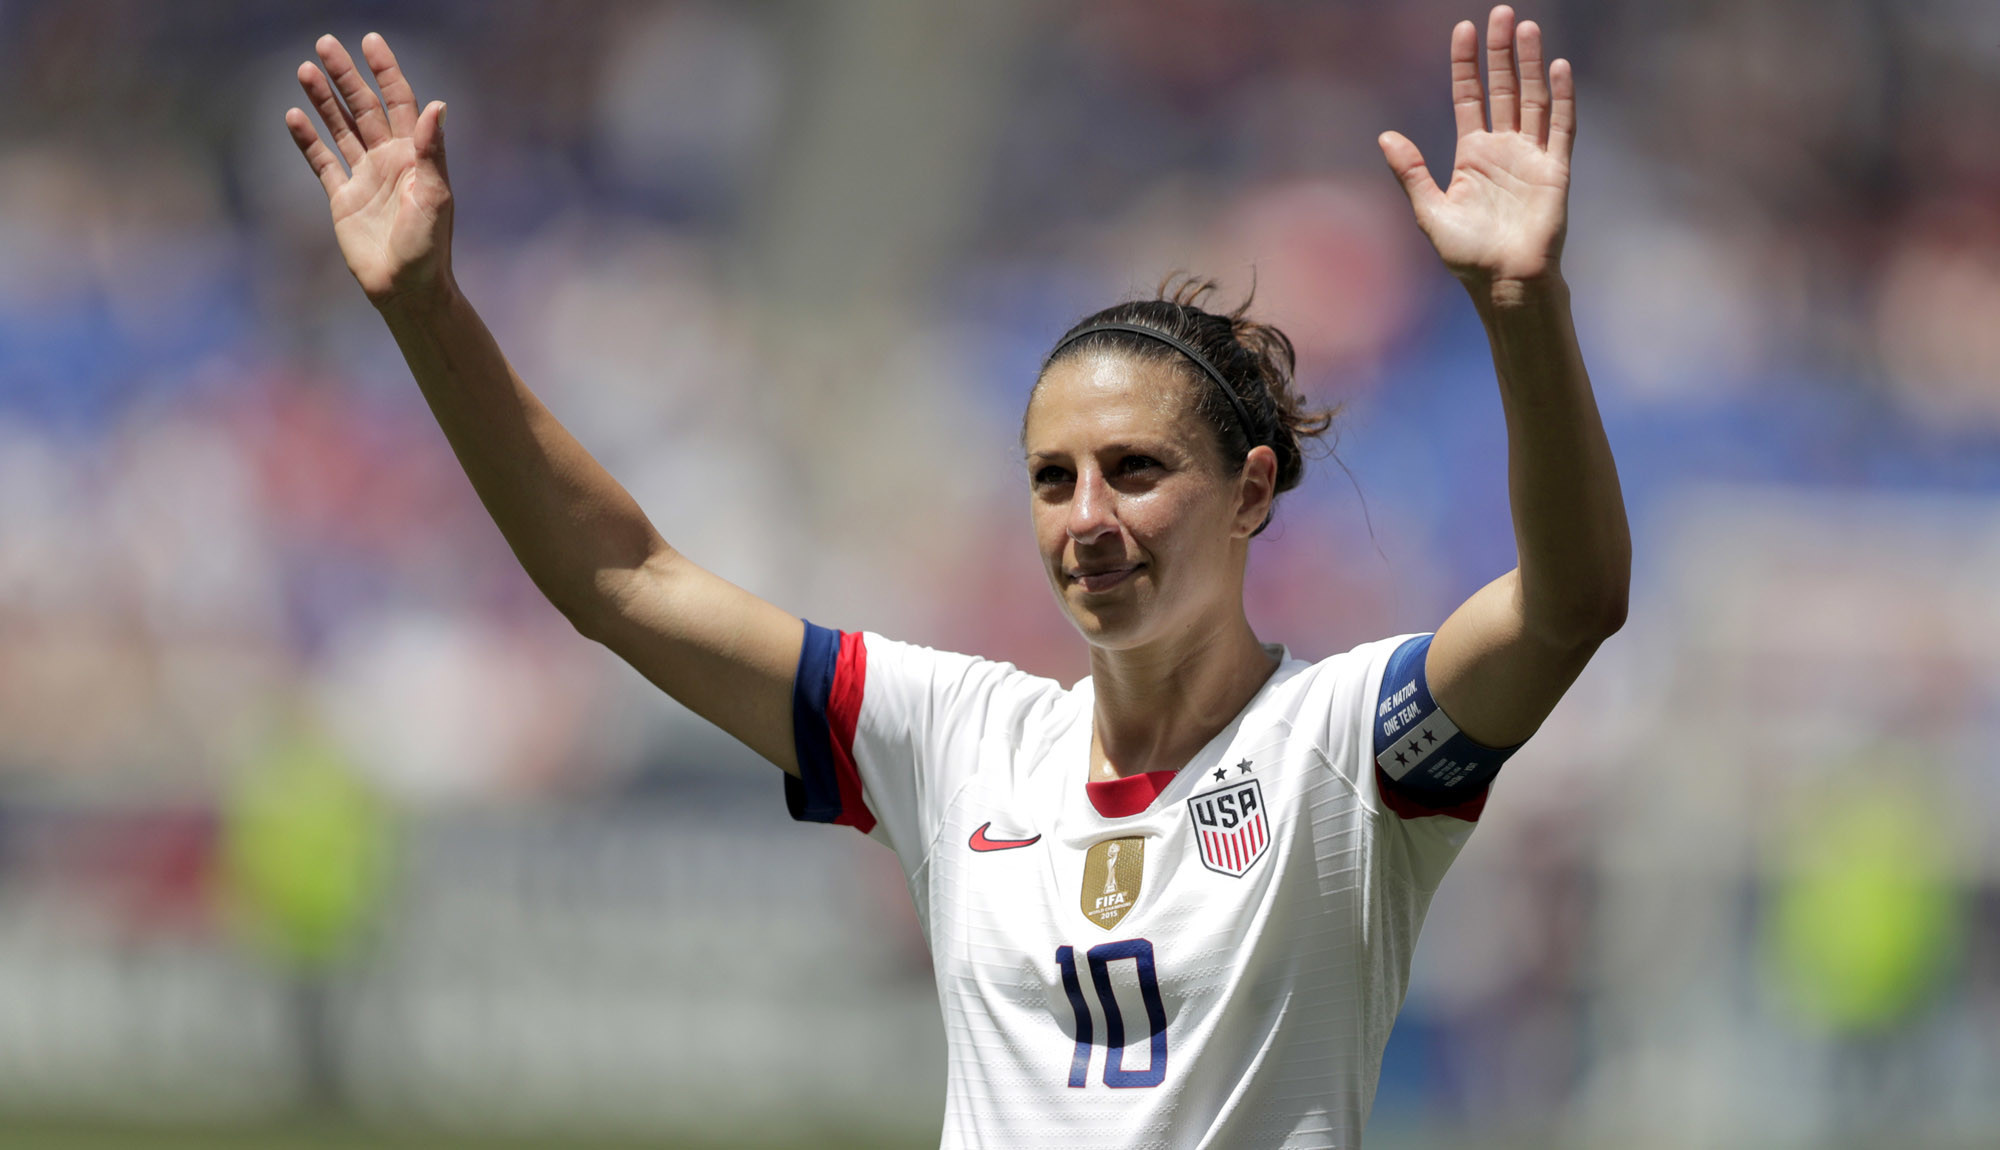 The Waiting Game Why Students >> Women S World Cup Carli Lloyd And Student Colleagues Play The